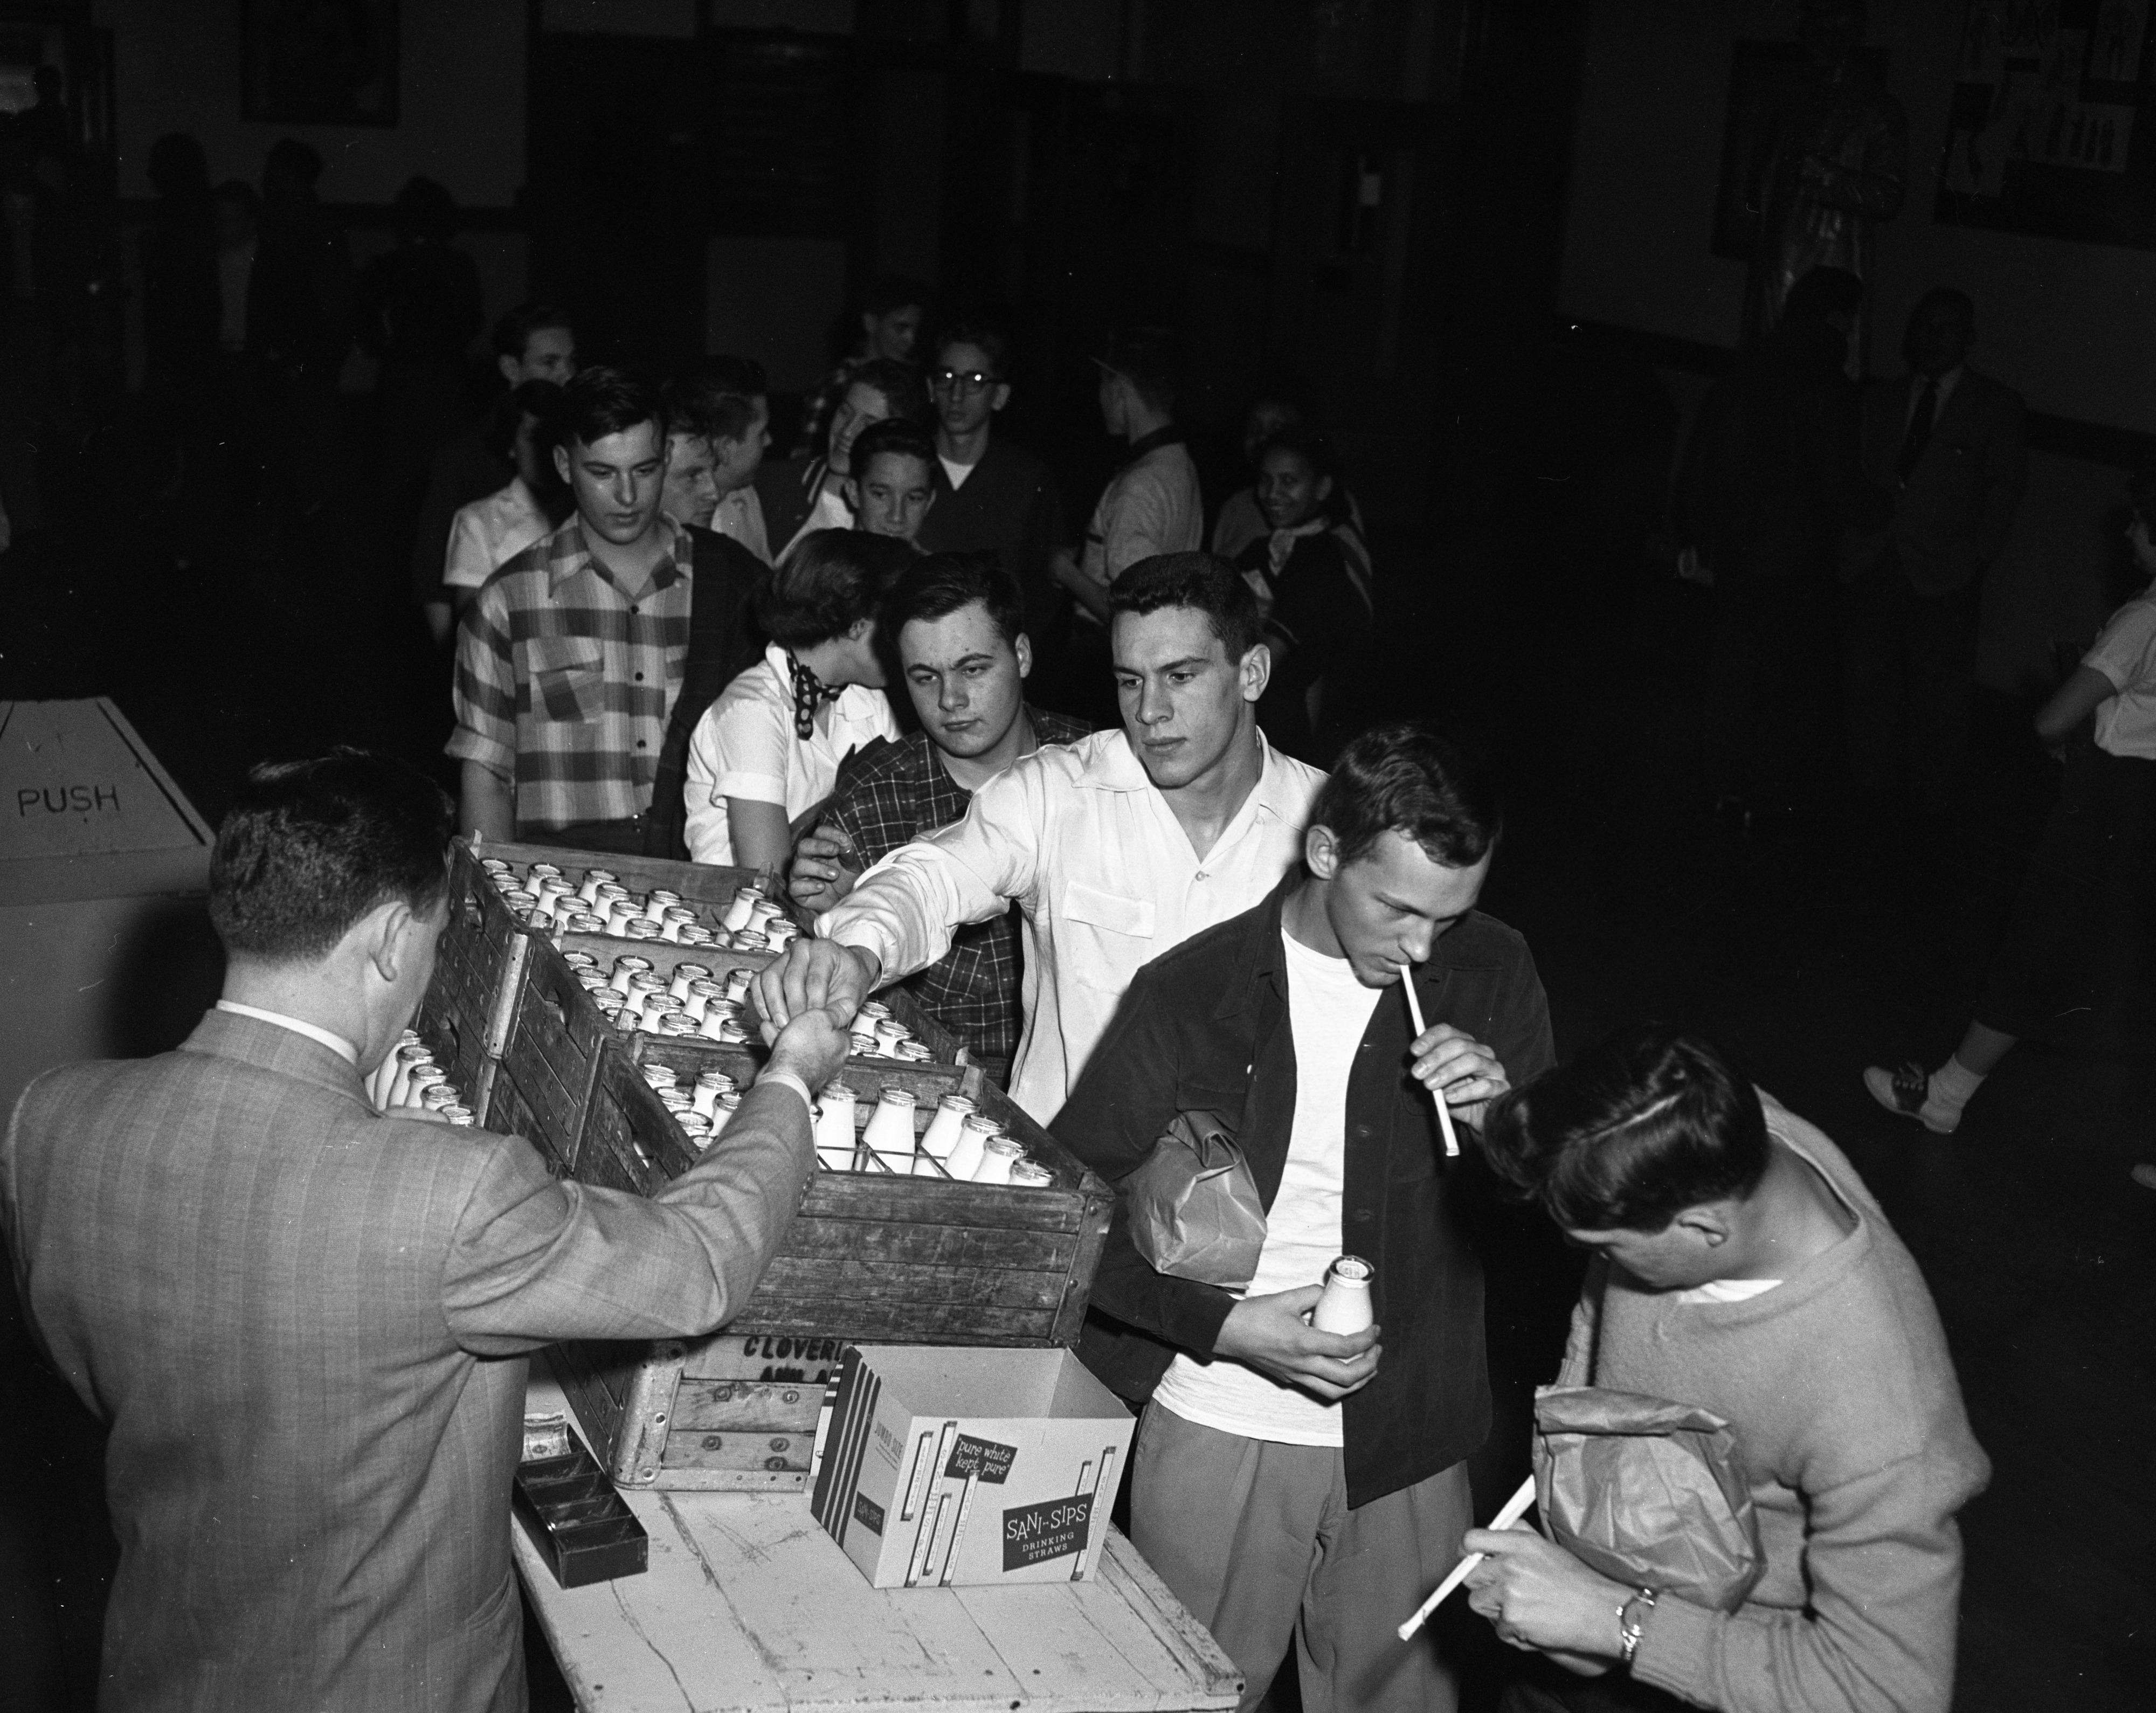 Thad Carr, administrative assistant at Ann Arbor High School, sells milk to students during lunch, February 1953 image